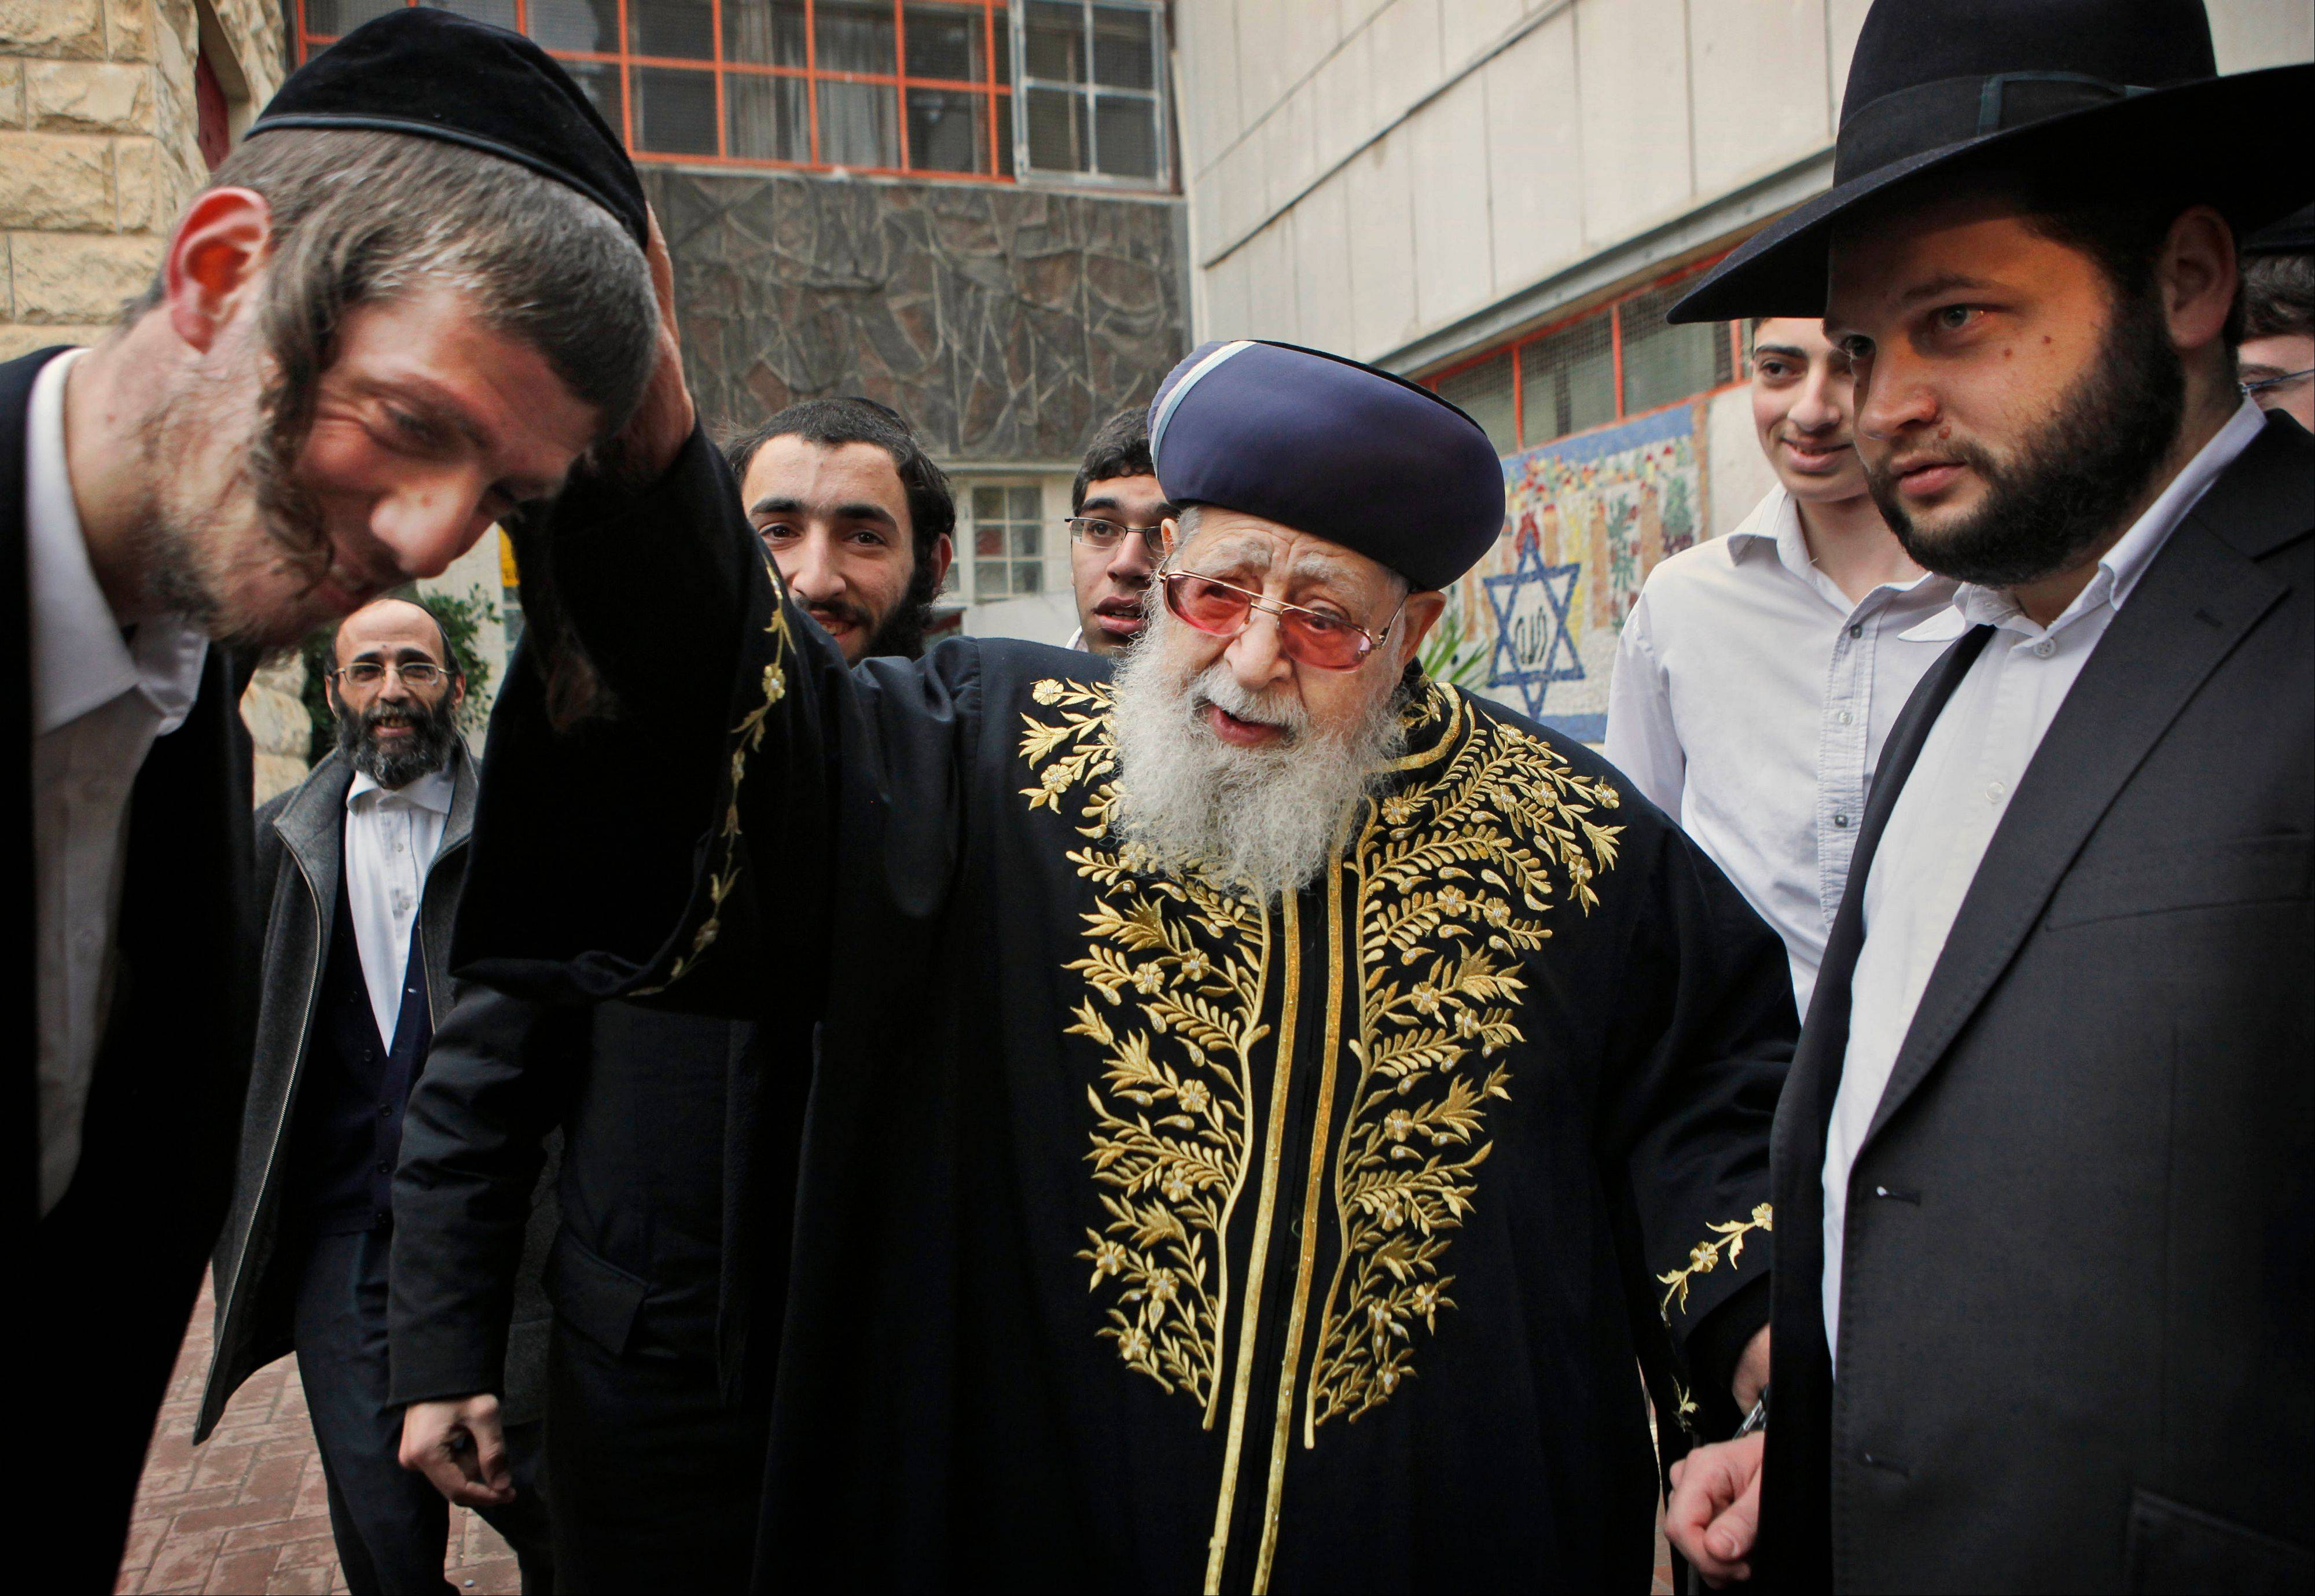 Associated Press/Feb. 10, 2009 Rabbi Ovadia Yosef, center, Jewish spiritual leader of Israel�s Shas party, blesses a man after casting his ballot at a polling station in Jerusalem.